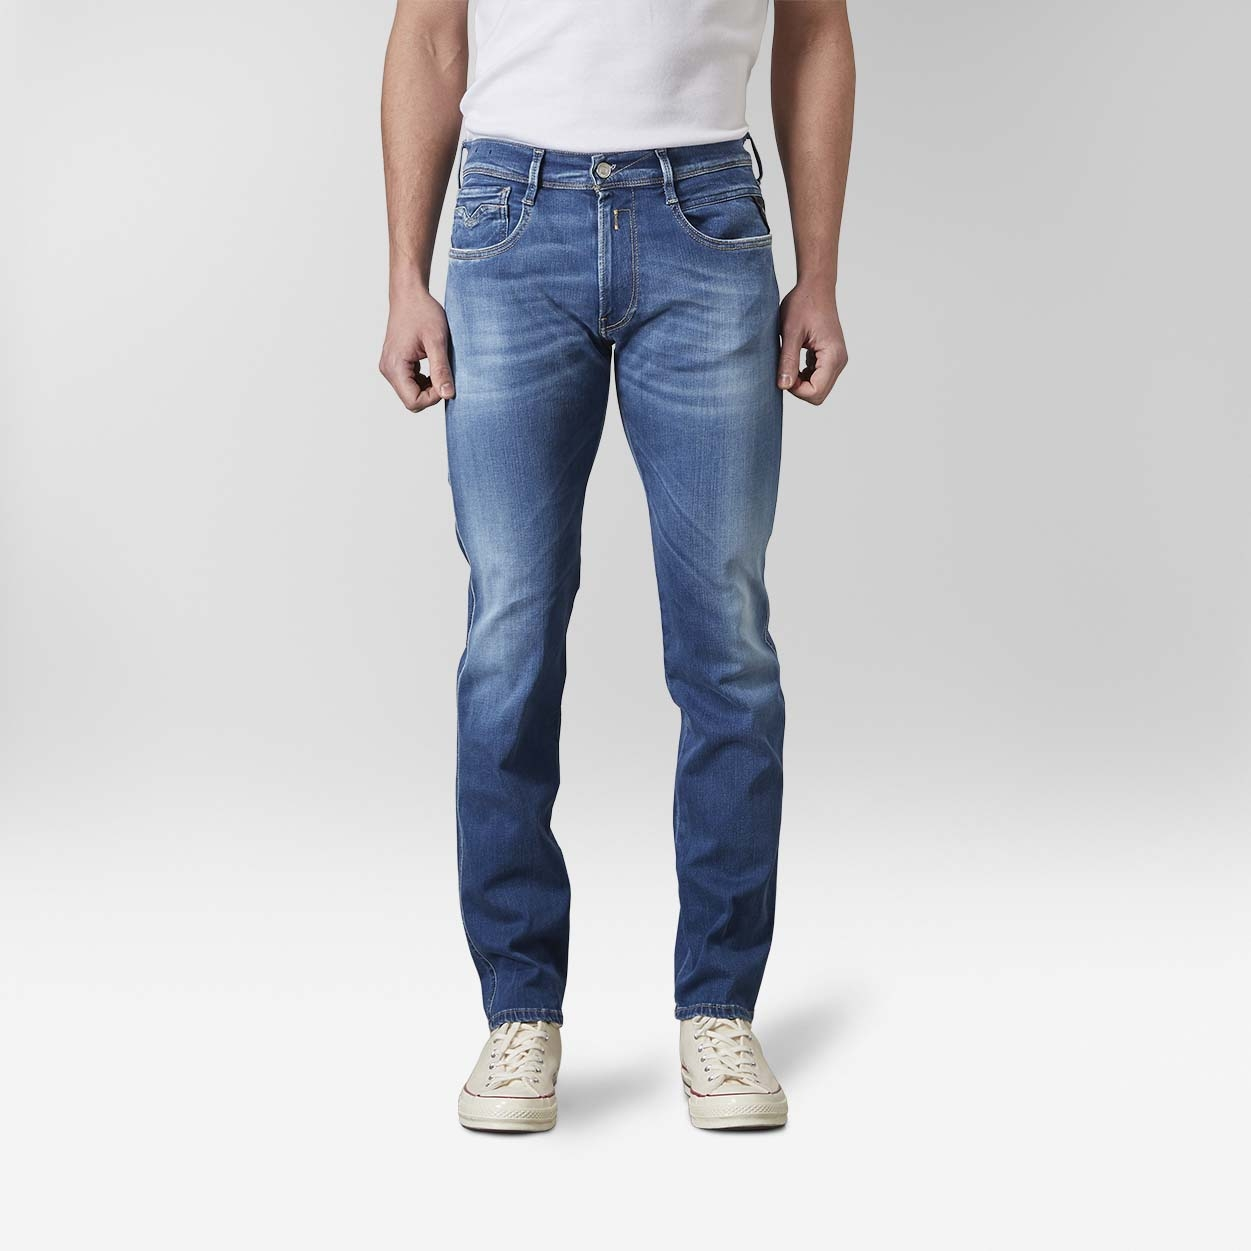 Replay M914 909 Anbass Pants Jeans Denim